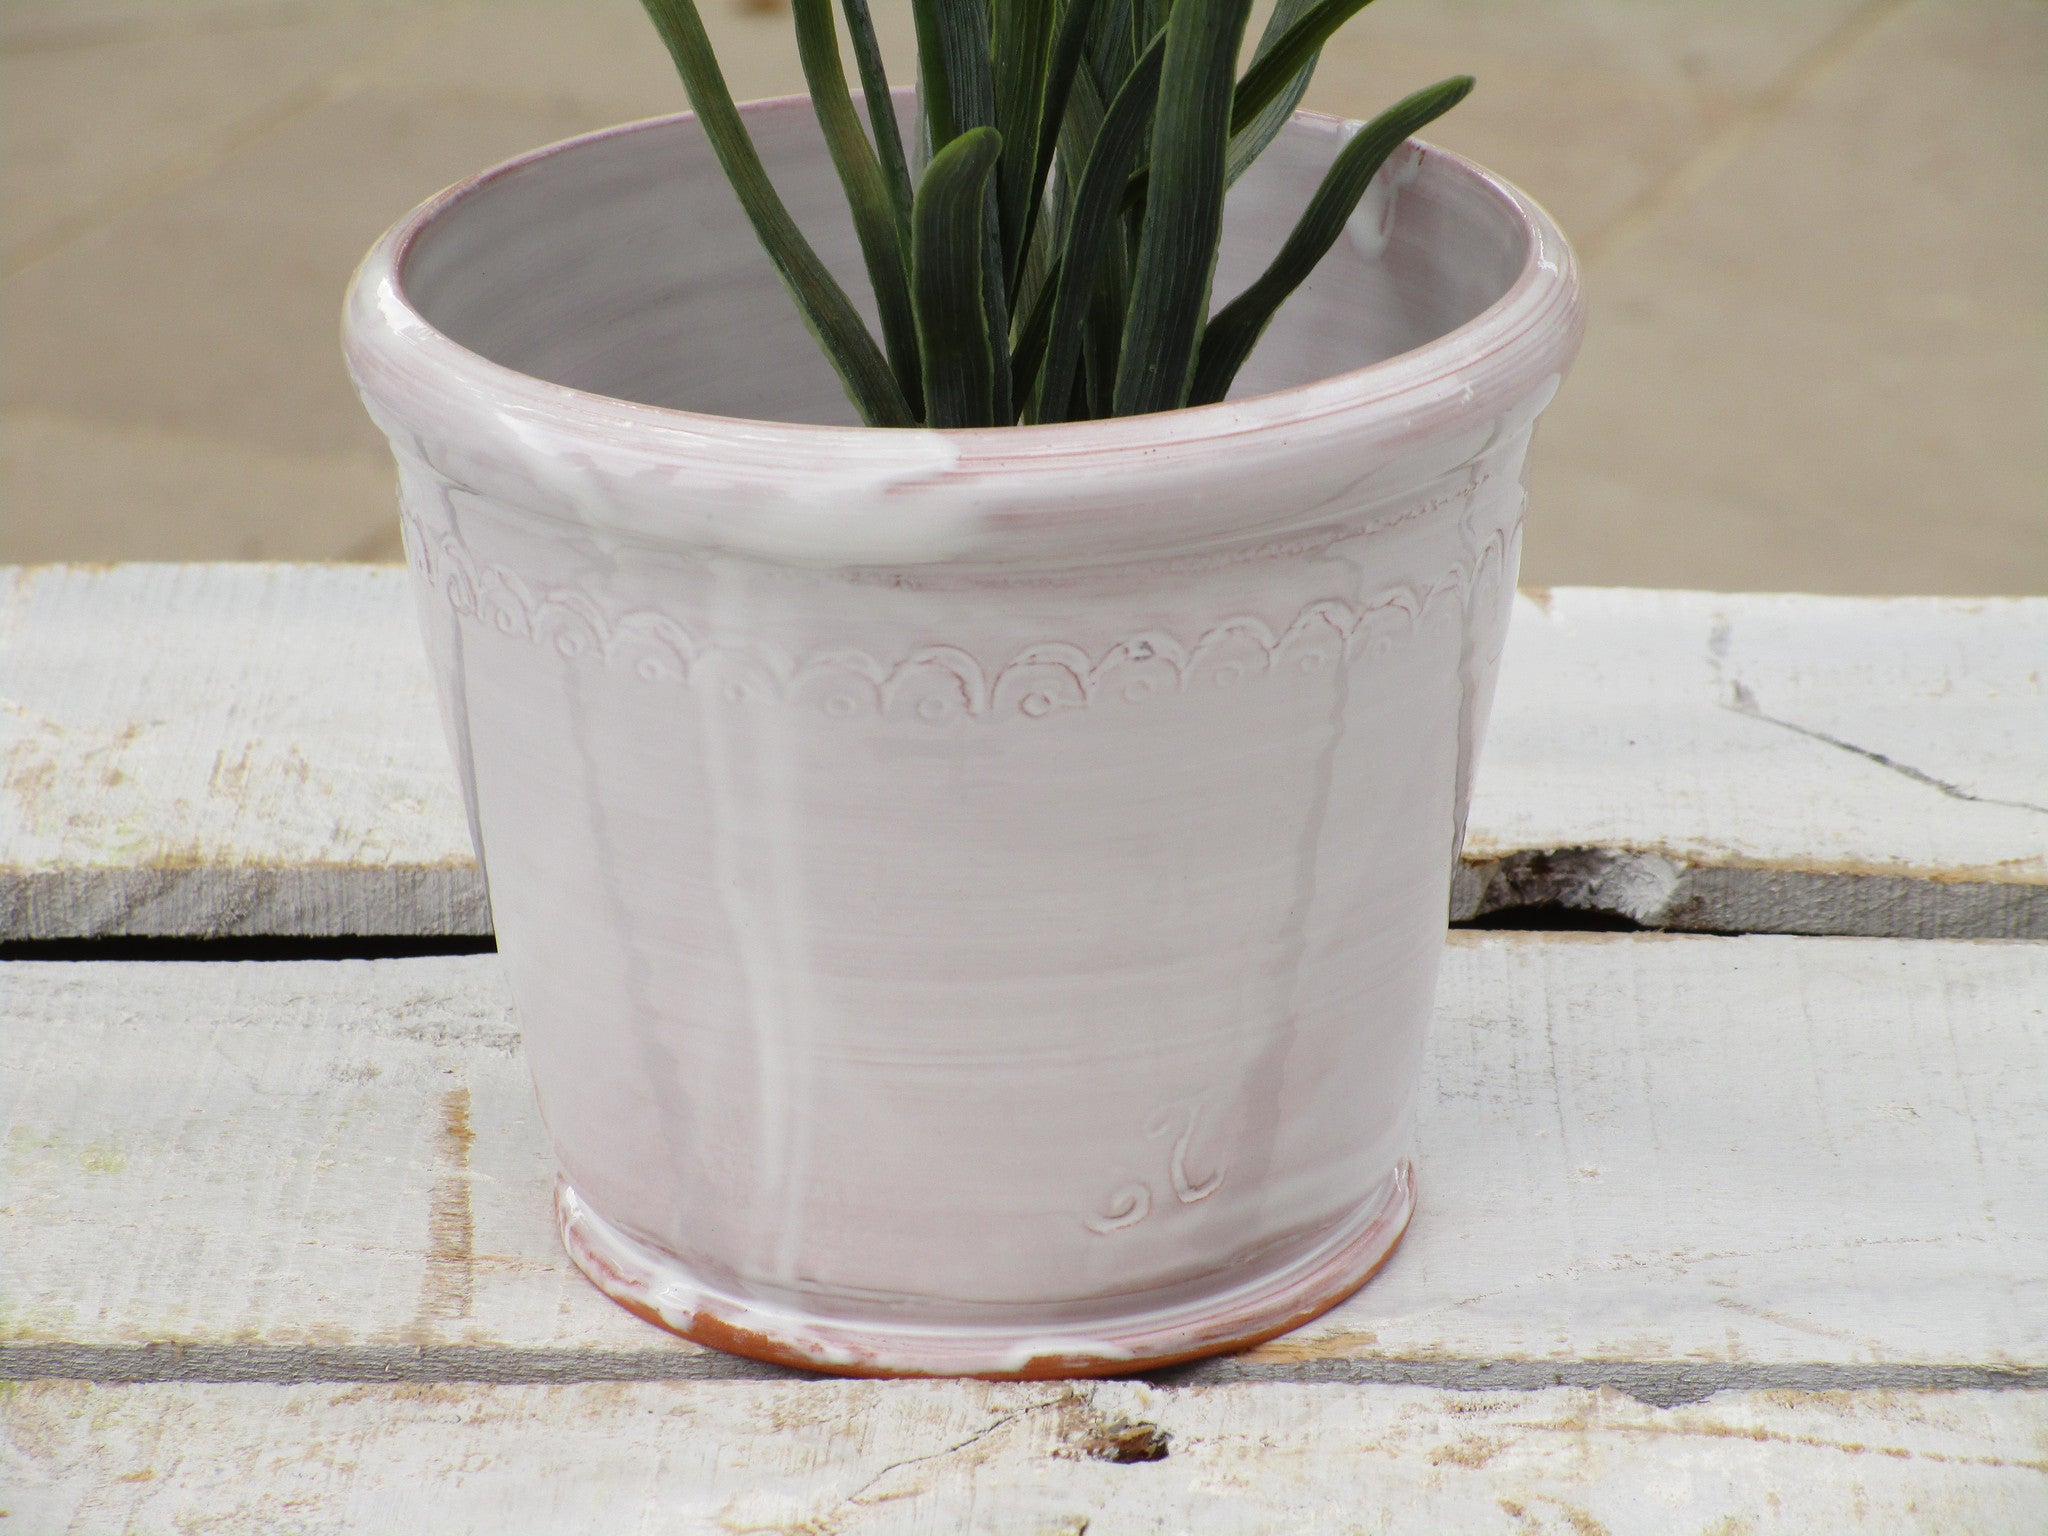 back of ceramic bespoke pot plant holder white glazed